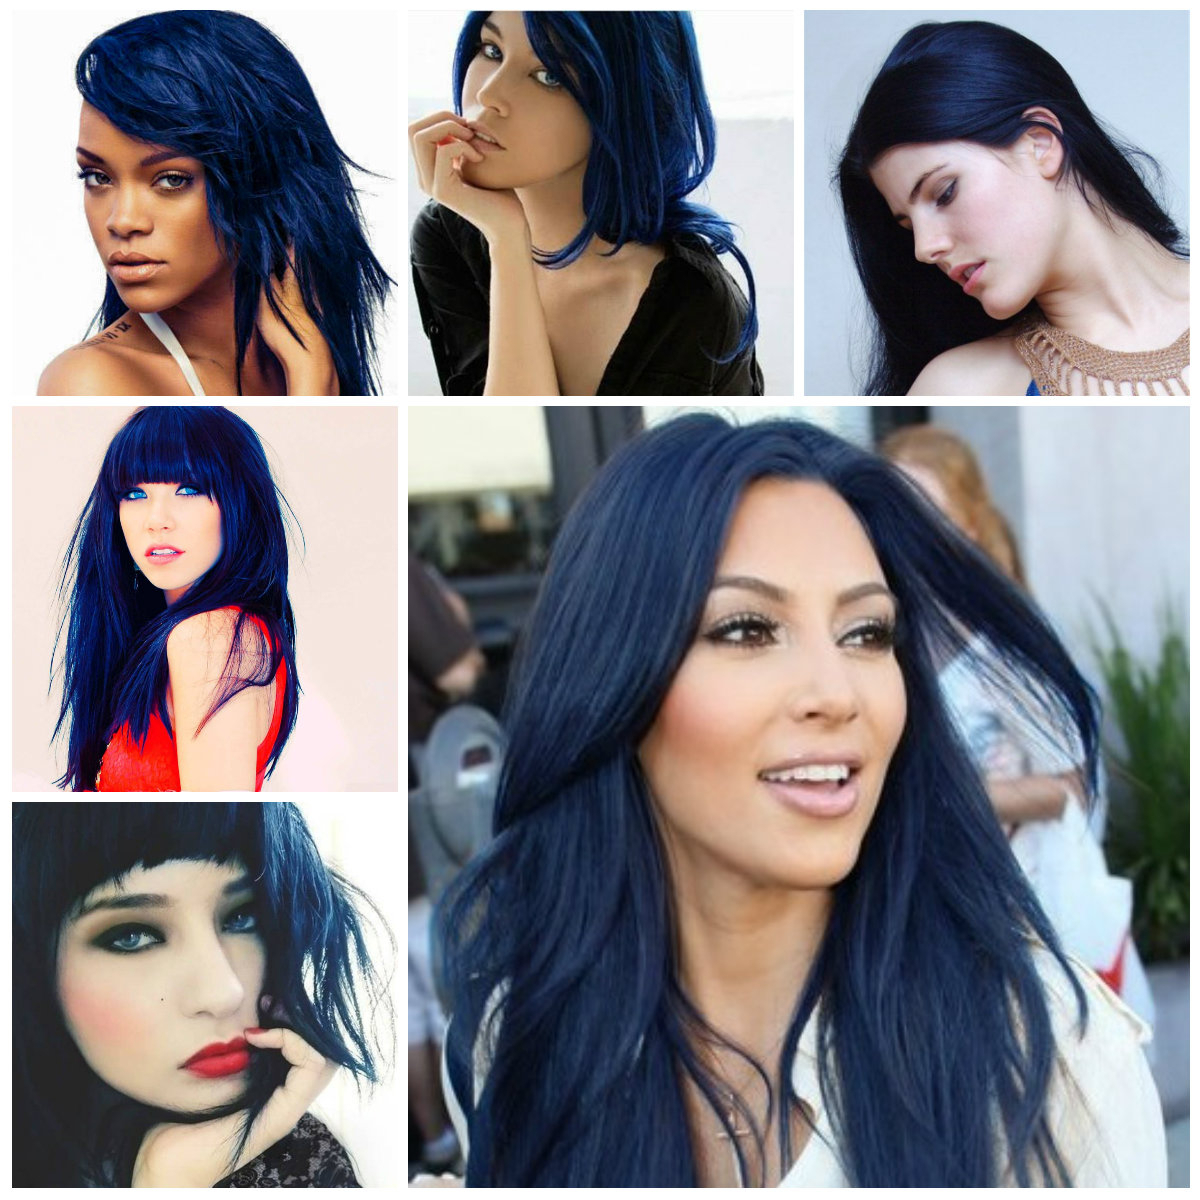 Haircuts, Hairstyles 2019 And Hair Colors For Short Long & Medium Hair Throughout Recent Medium Hairstyles With Color For Black Women (View 13 of 20)